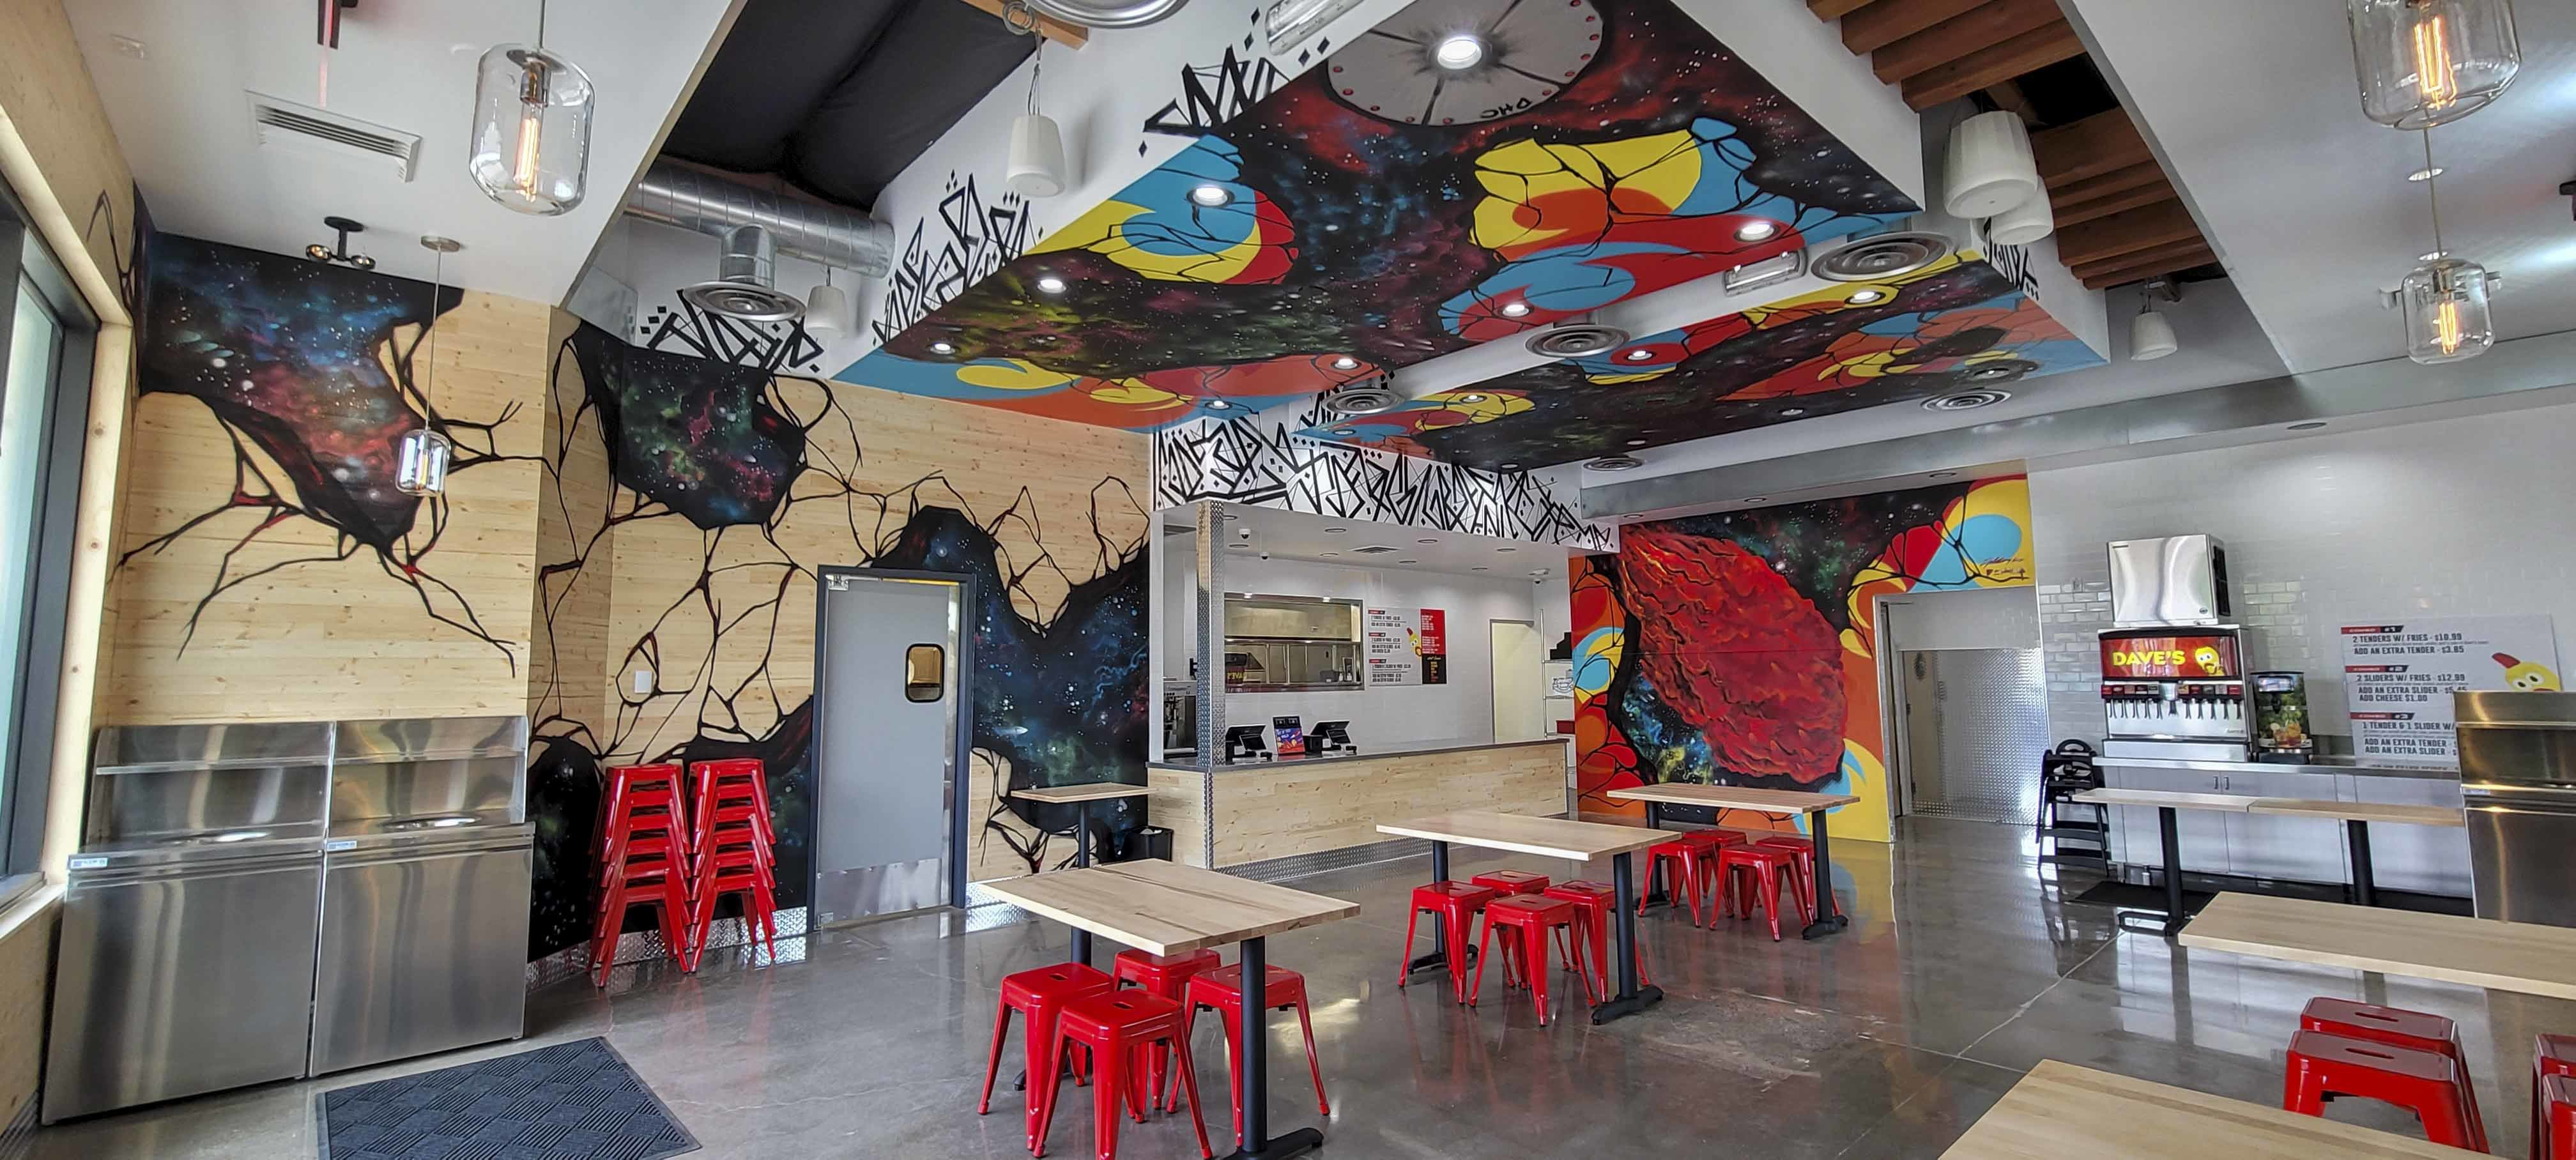 Walls of the Dave's Hot Chicken location in Tualatin include colorful murals, as if the wood is peeling away to reveal red, blue, and yellow bursts. The interior space also includes a number of tables and red stools, with a walk-up counter.